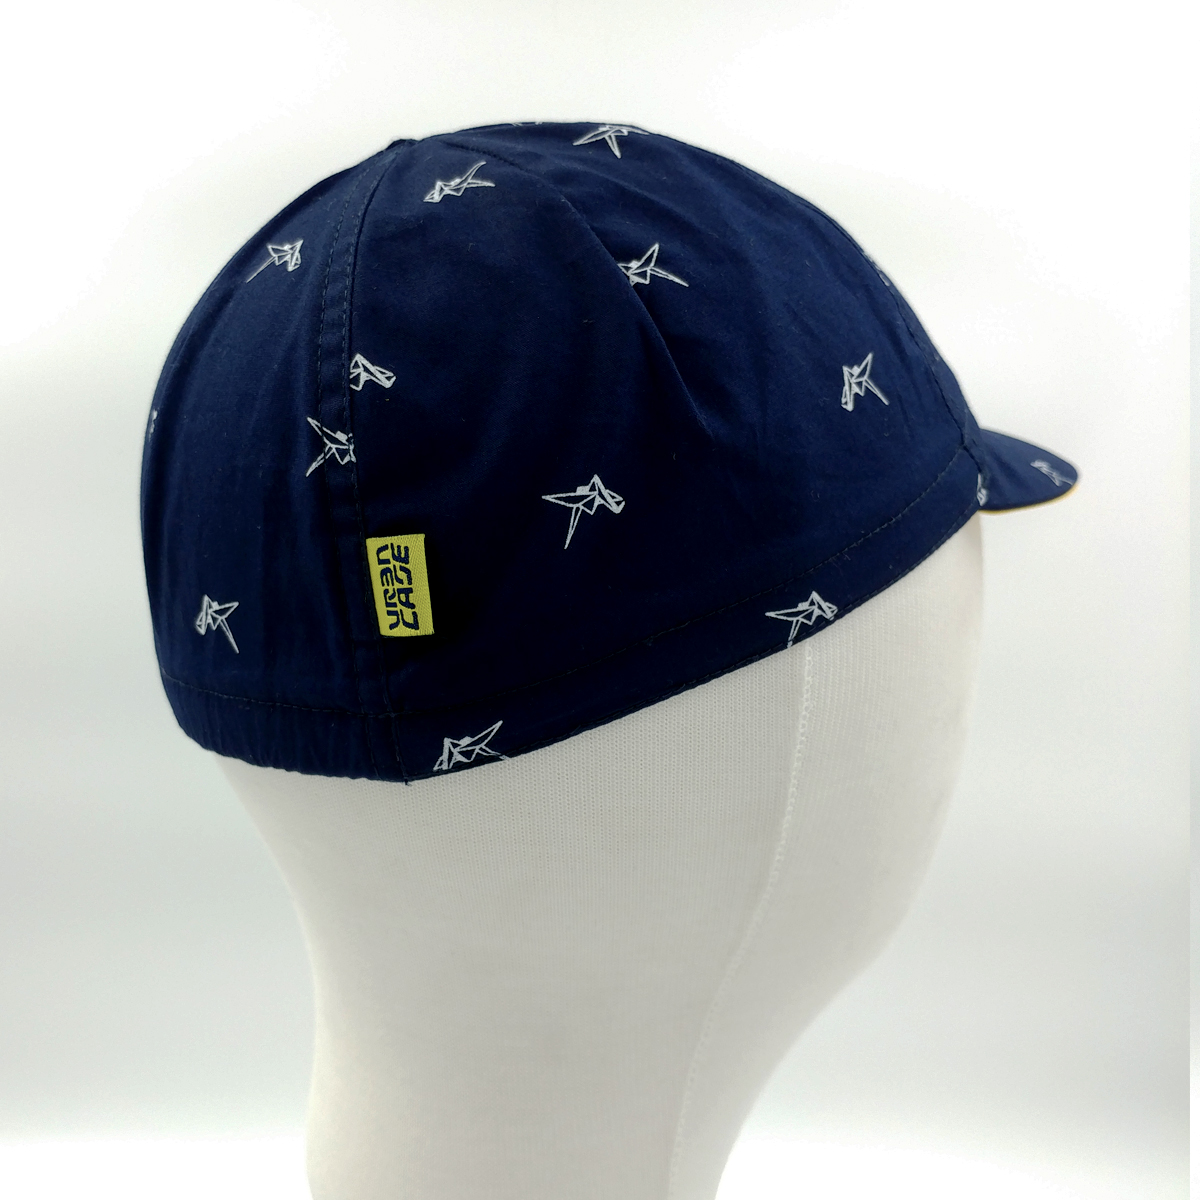 cycling cap - foldbird3